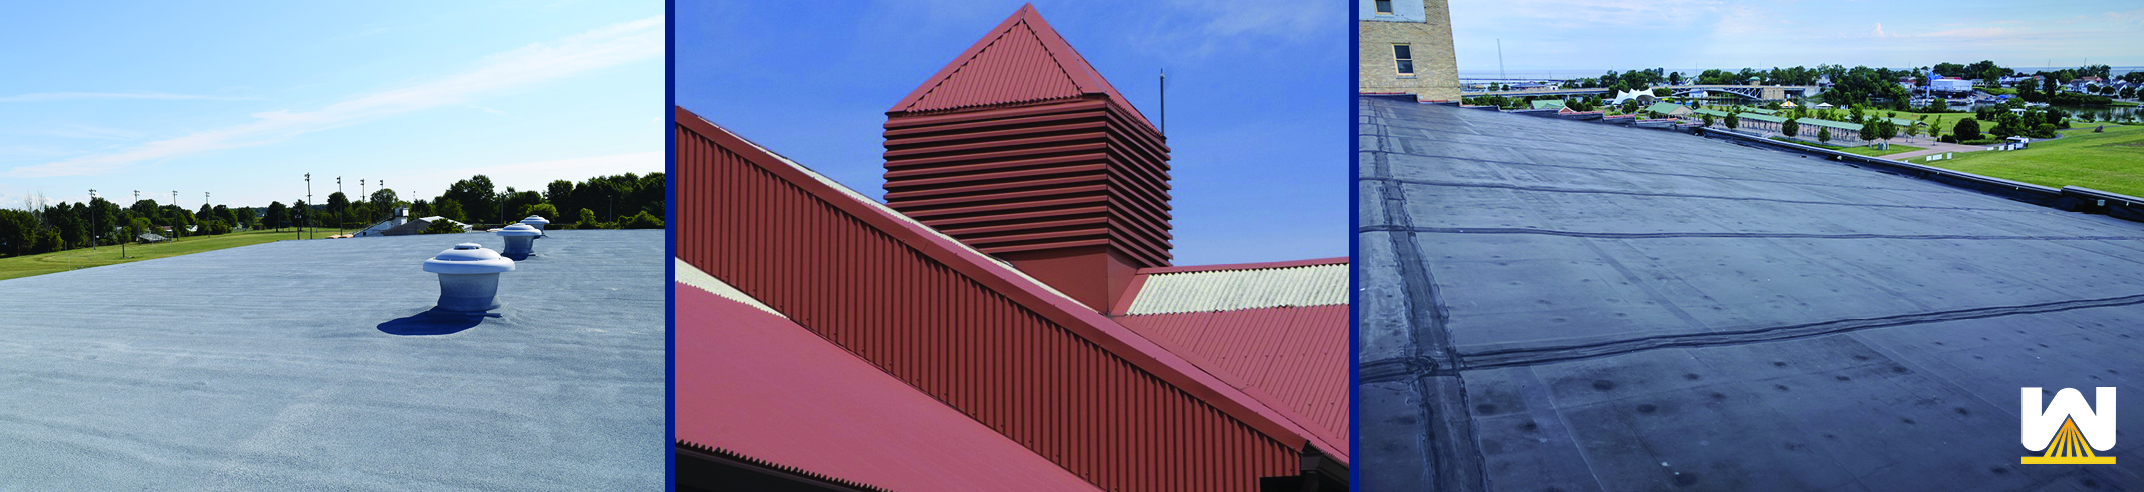 Single Ply Roof Installation : Commercial roofing installation and costs spf vs single